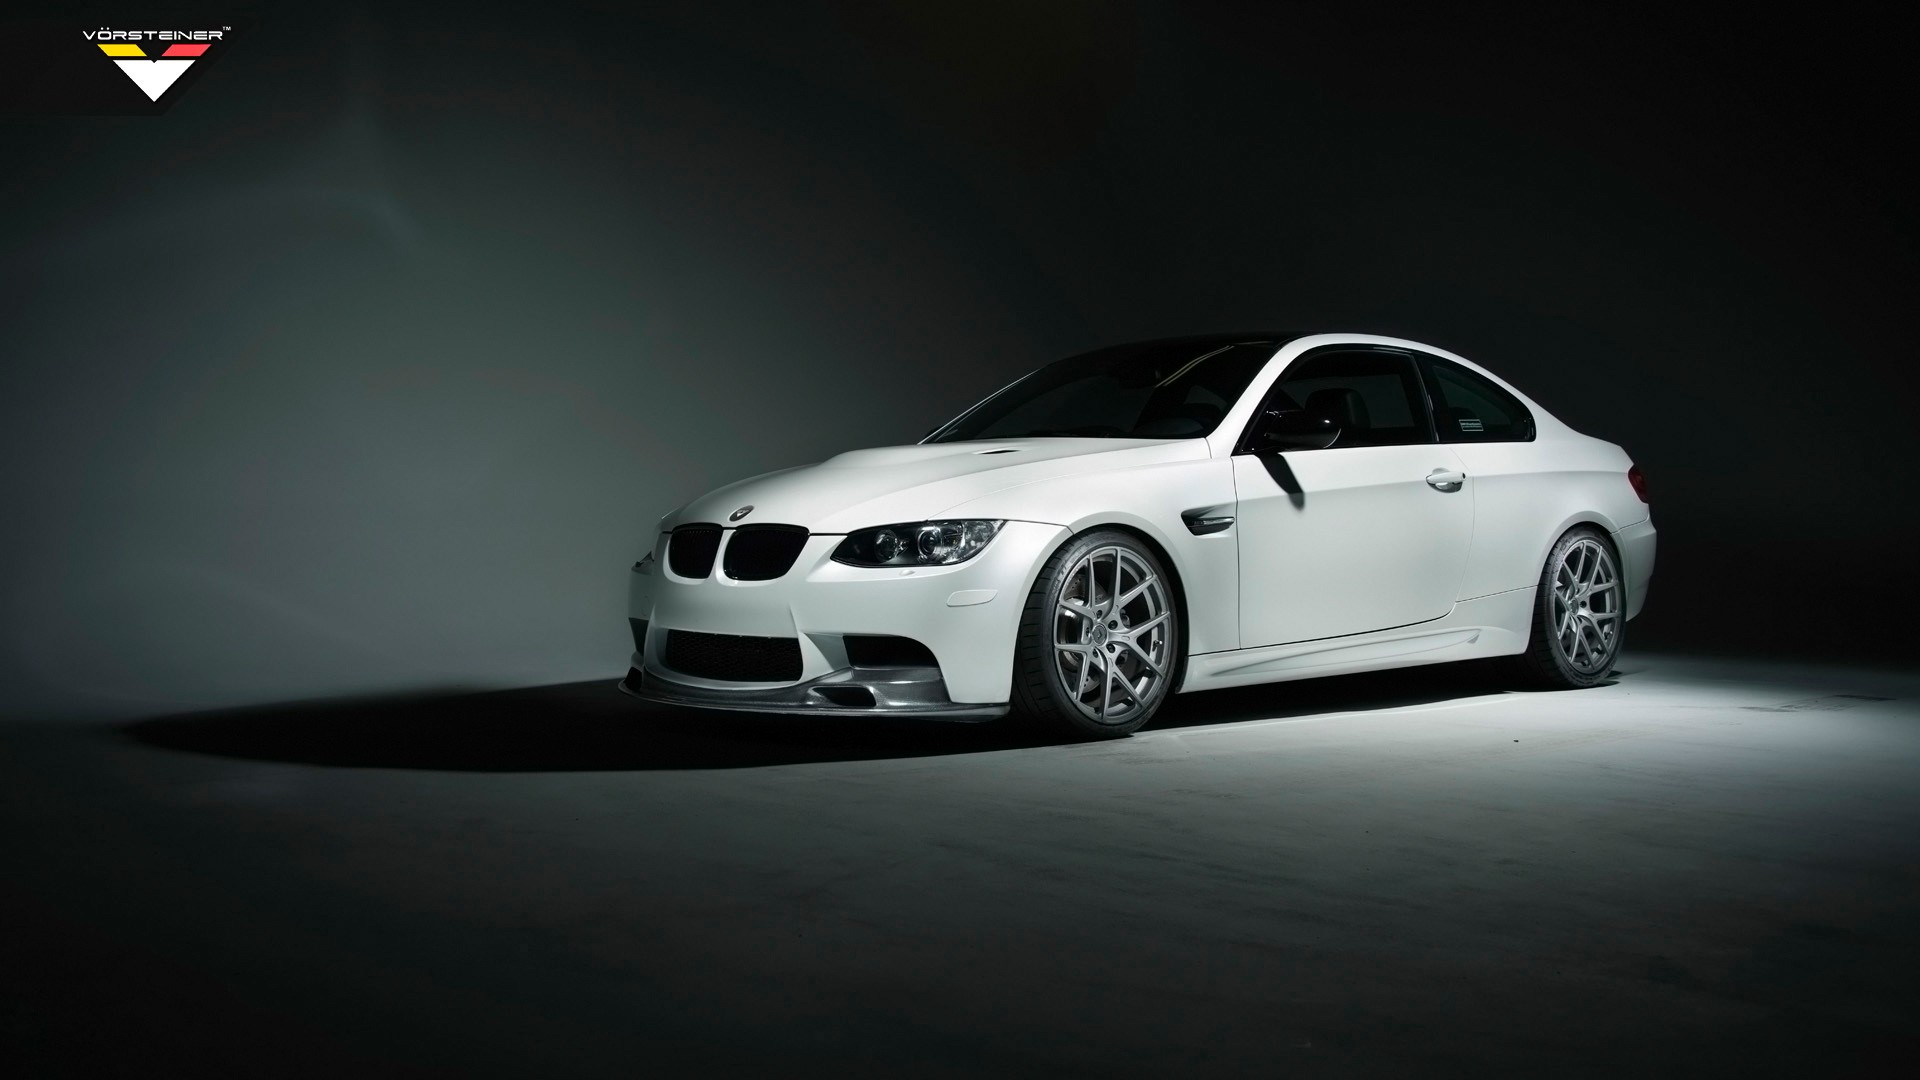 2014 Bmw E92 M3 By Vorsteiner Wallpaper Hd Car